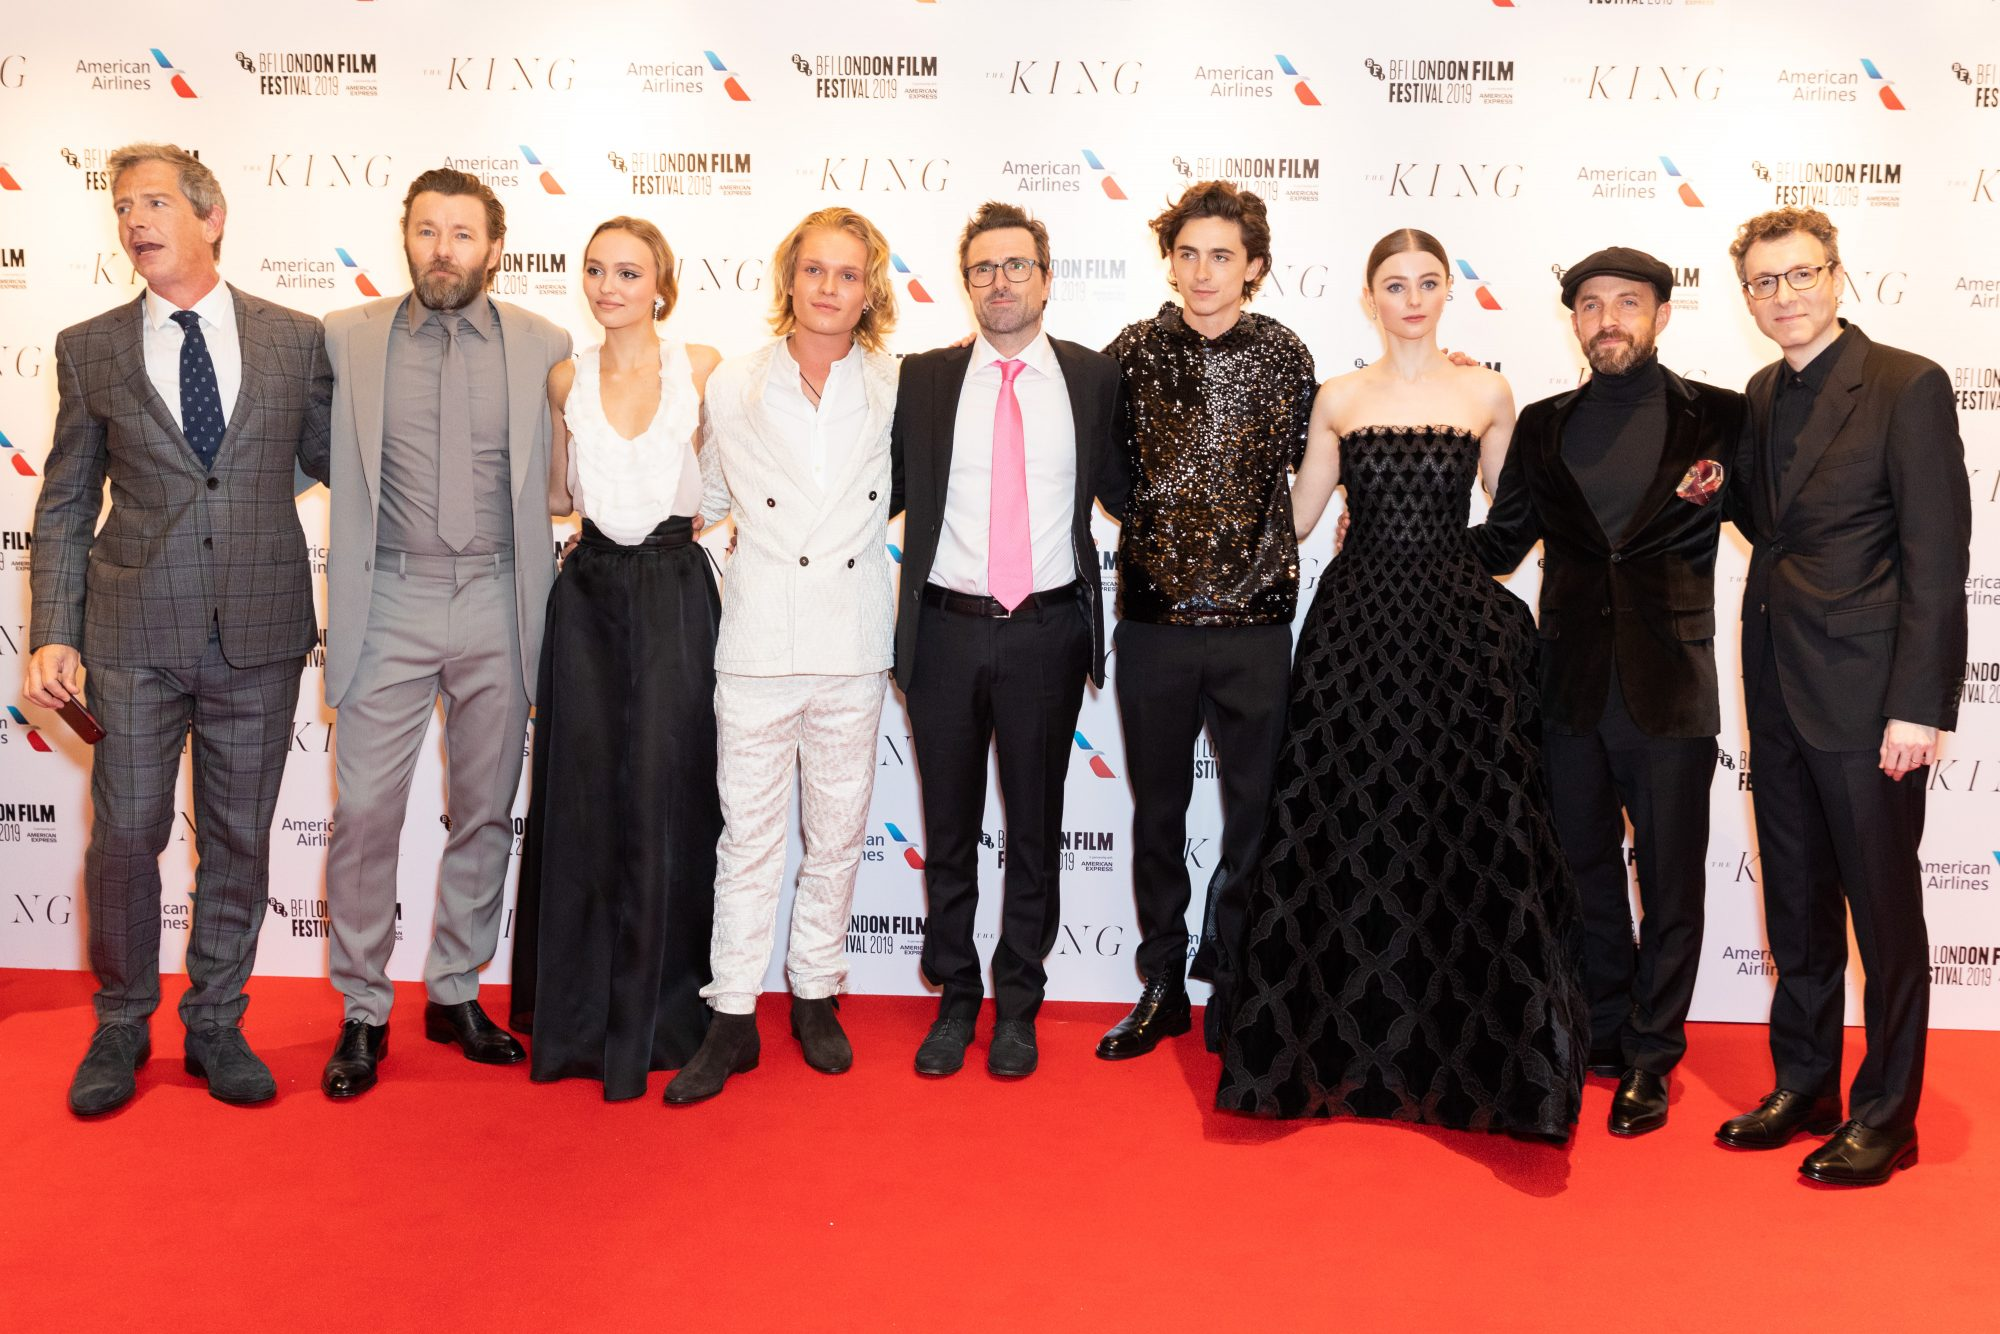 (L-R) Ben Mendelsohn, Joel Edgerton, Lily-Rose Depp, Tom Glynn-Carney, David Michod, Timothee Chalamet, Thomasin Harcourt McKenzie, Tom Lawrence and Nick Britell at The King UK Premiere during the 63rd BFI London Film Festival at Odeon Luxe Leicester Square on 3rd October 2019.  Photos: Netflix